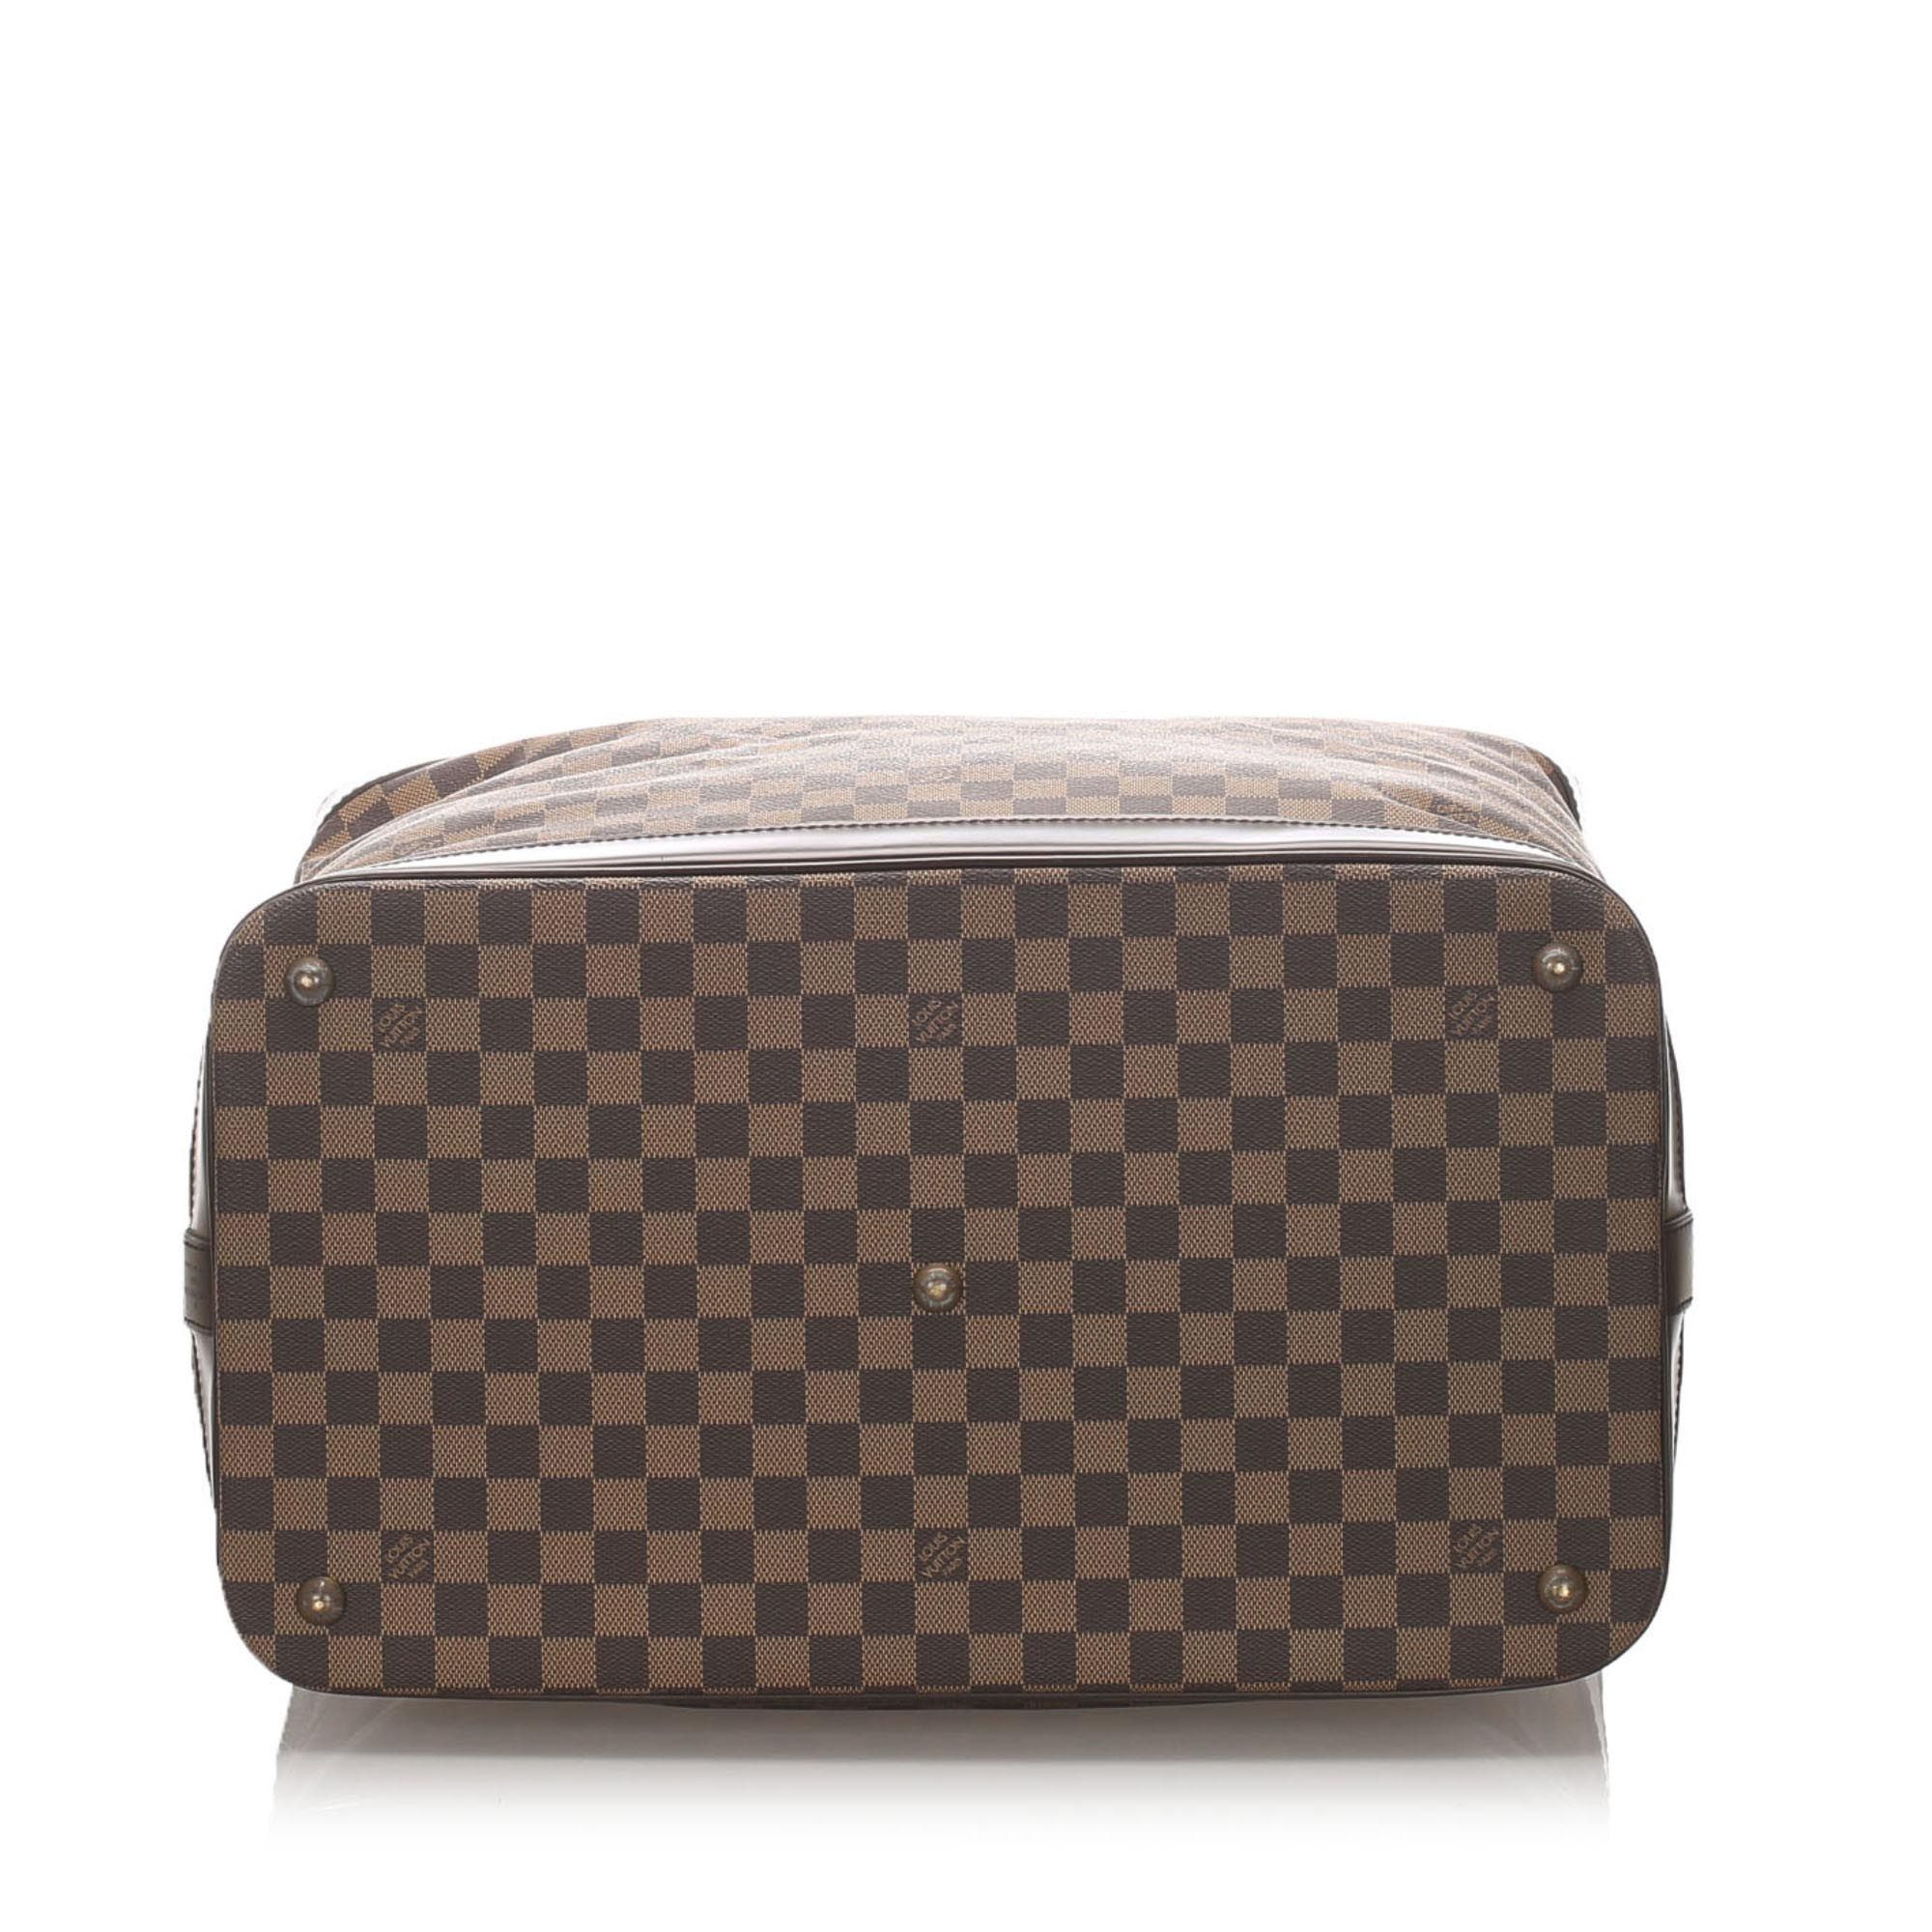 Vintage Louis Vuitton Damier Ebene Grimaud Brown